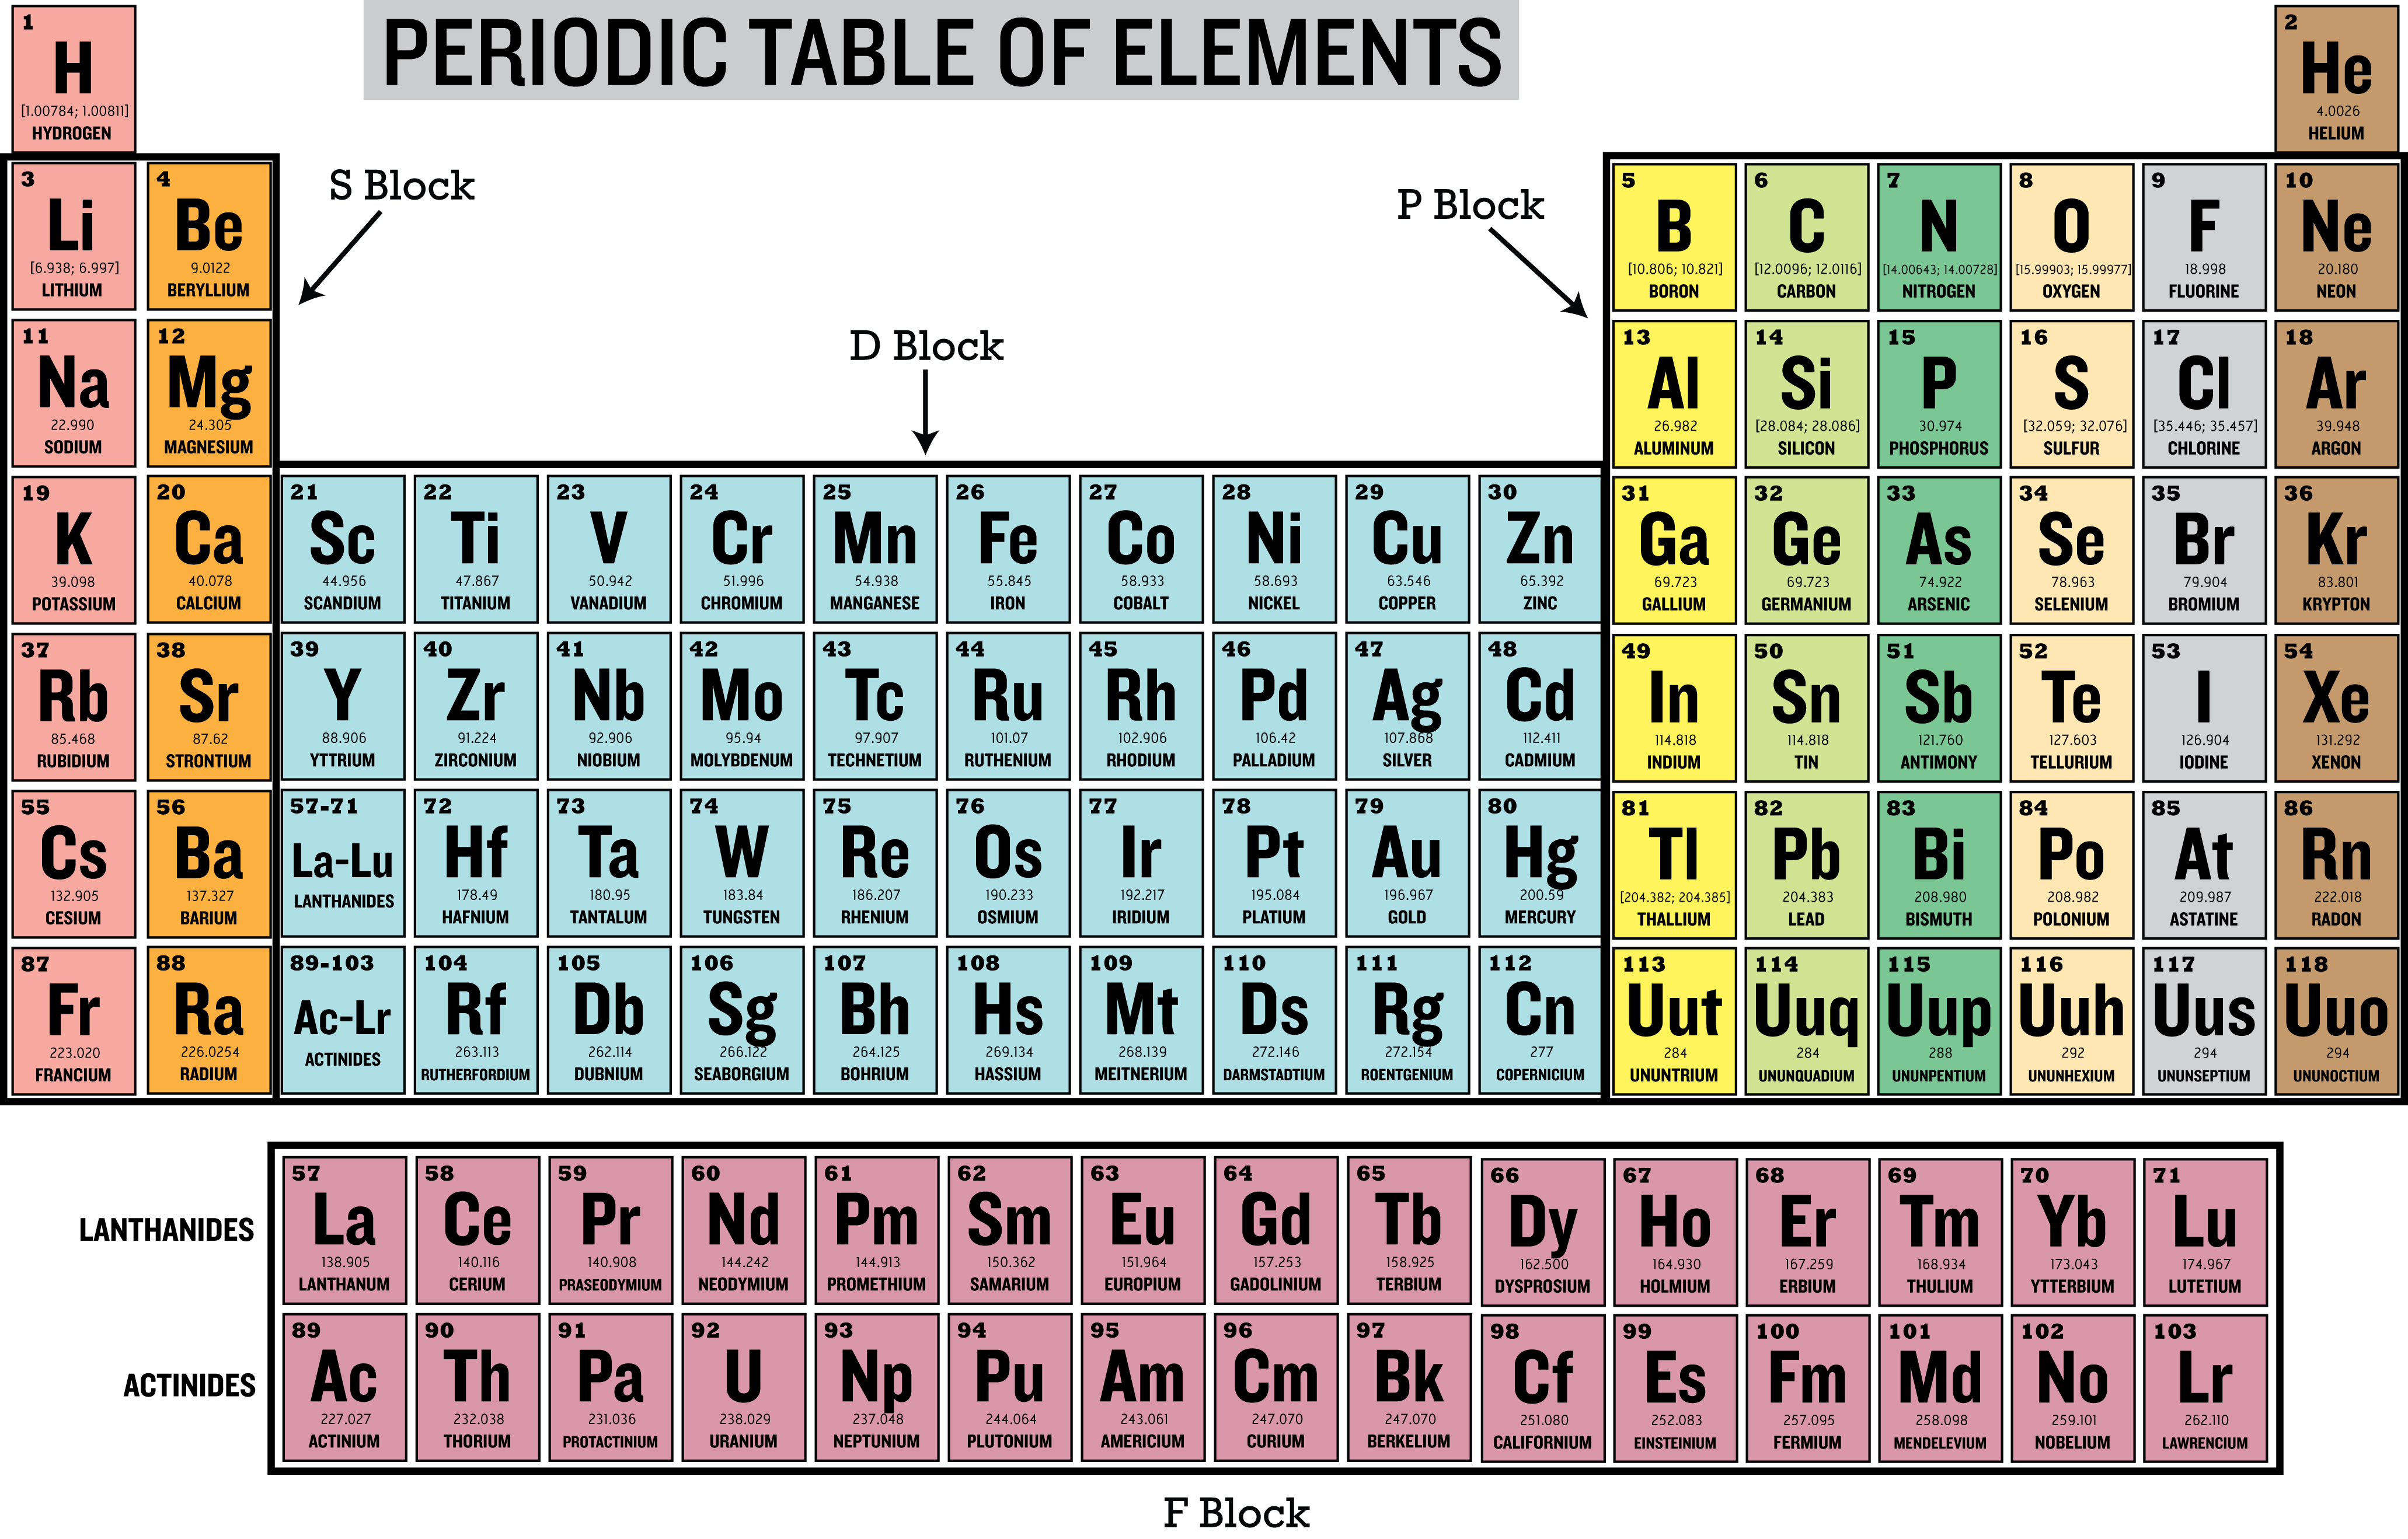 periodic elements diagram usb 3 0 cable wiring license cc by nc